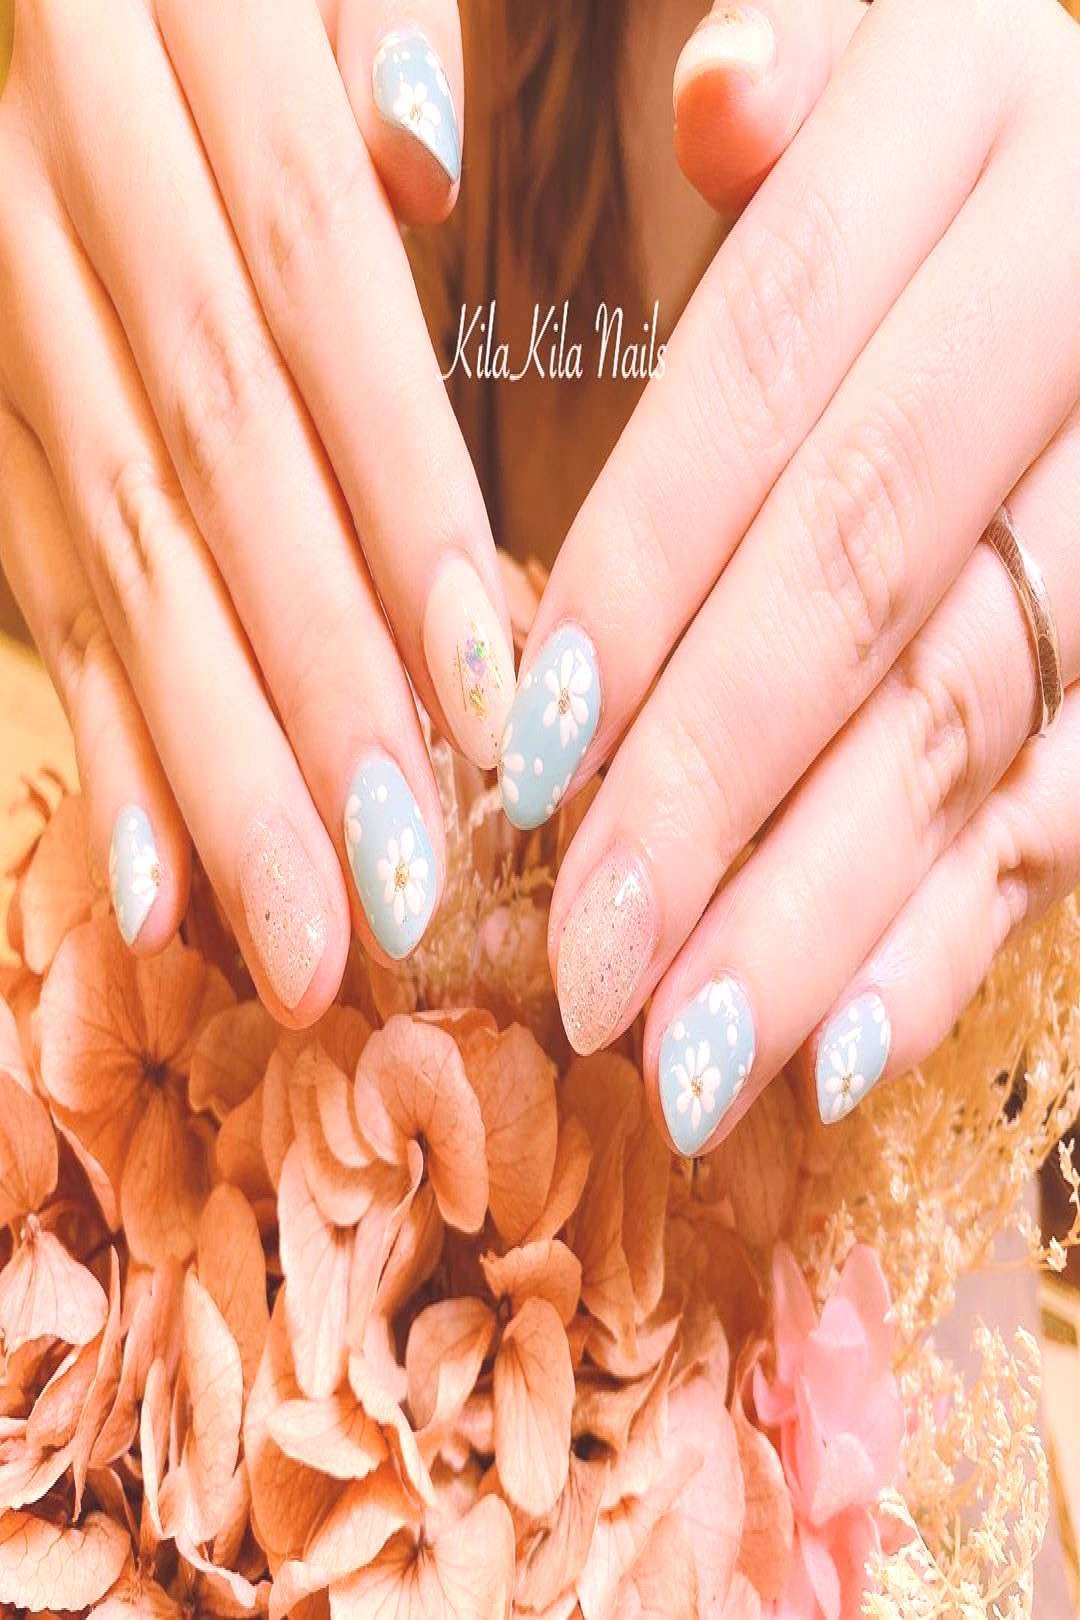 #people #more #text #one #and #or #天氣越來越好,很溫暖了,花花款超舒服的⋯薄?You can find Wedding nails and more on our website.#天氣越來越好,很溫暖了,花花款超舒服的⋯薄?